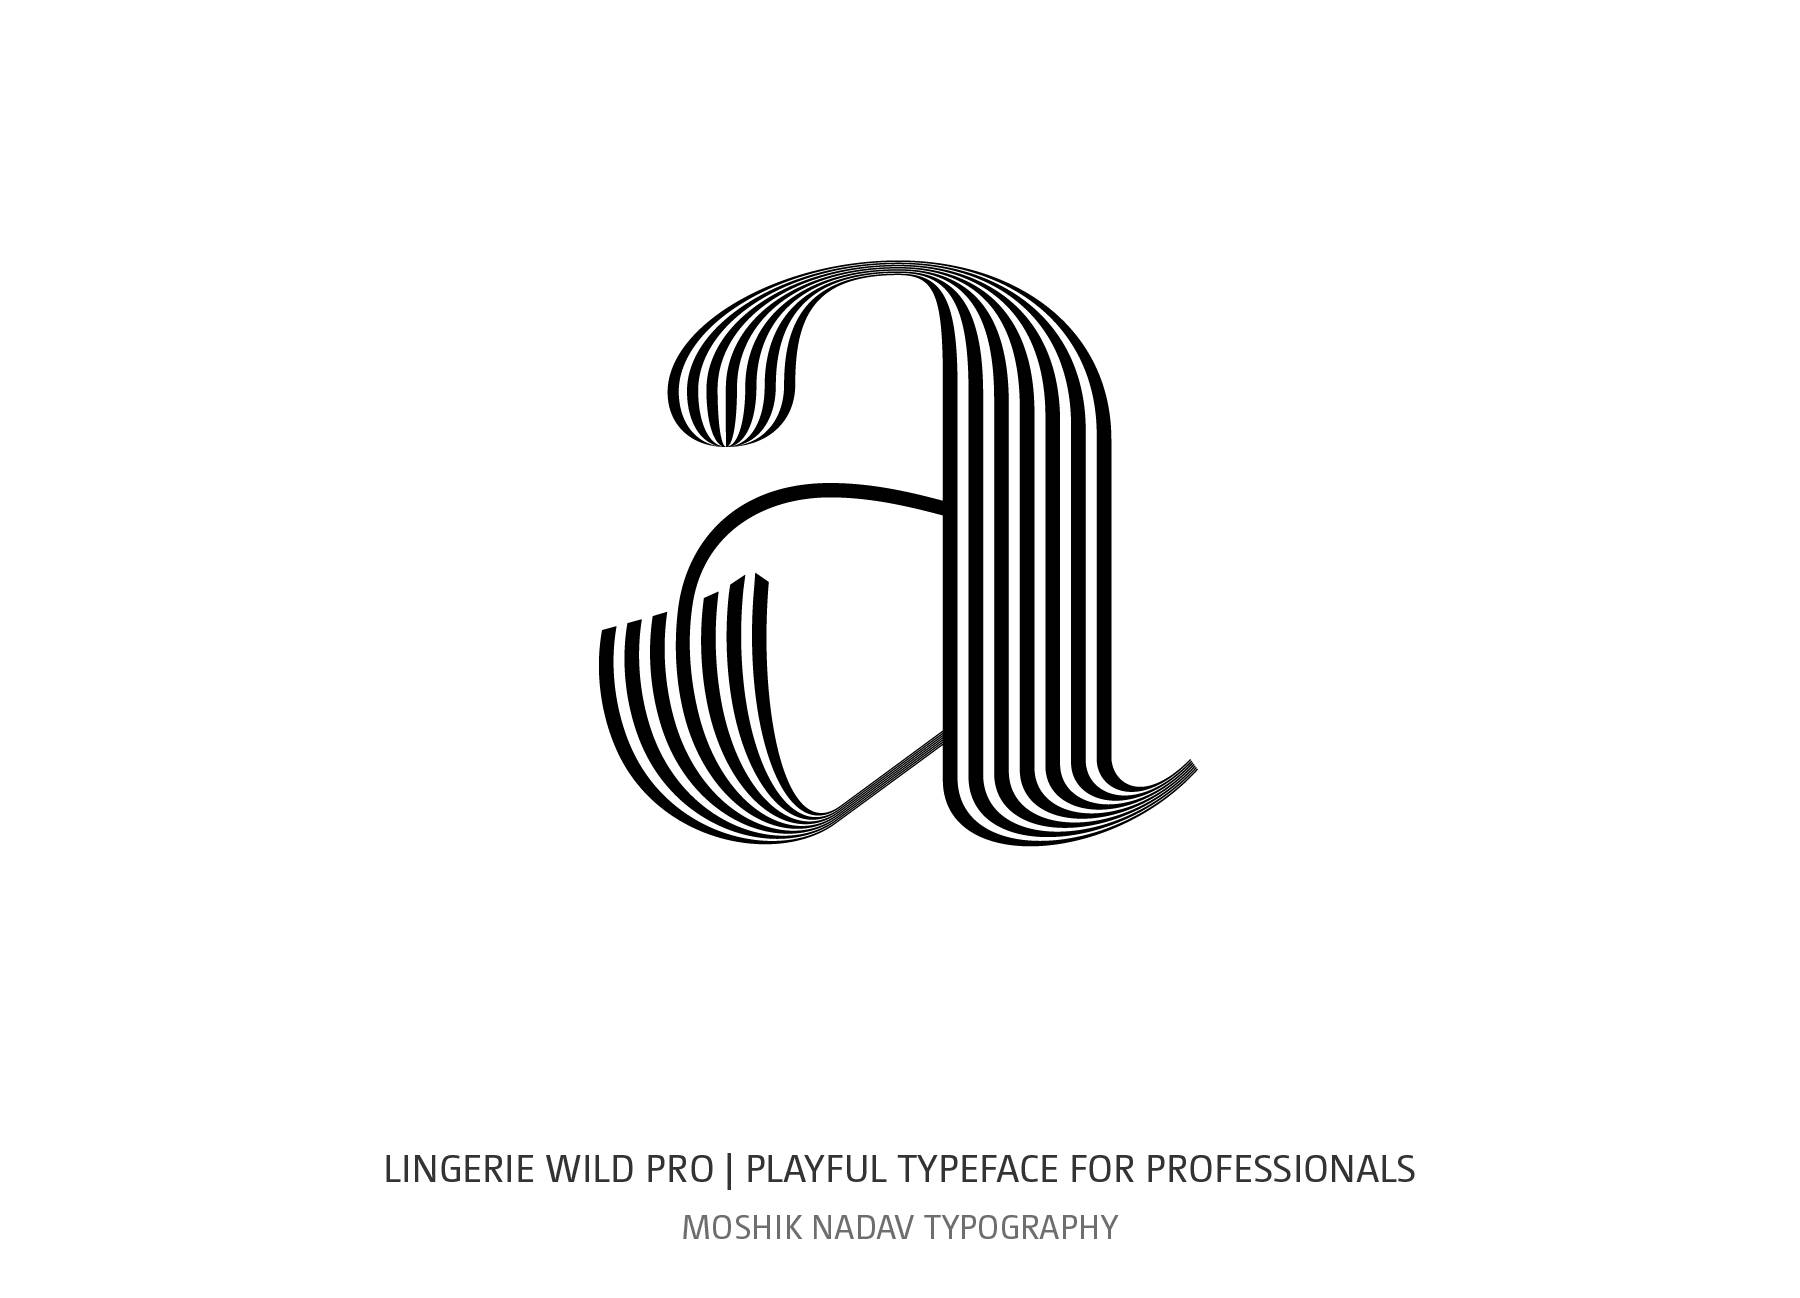 Lingerie Wild Pro Typeface designed for sexy logos and fashion typography